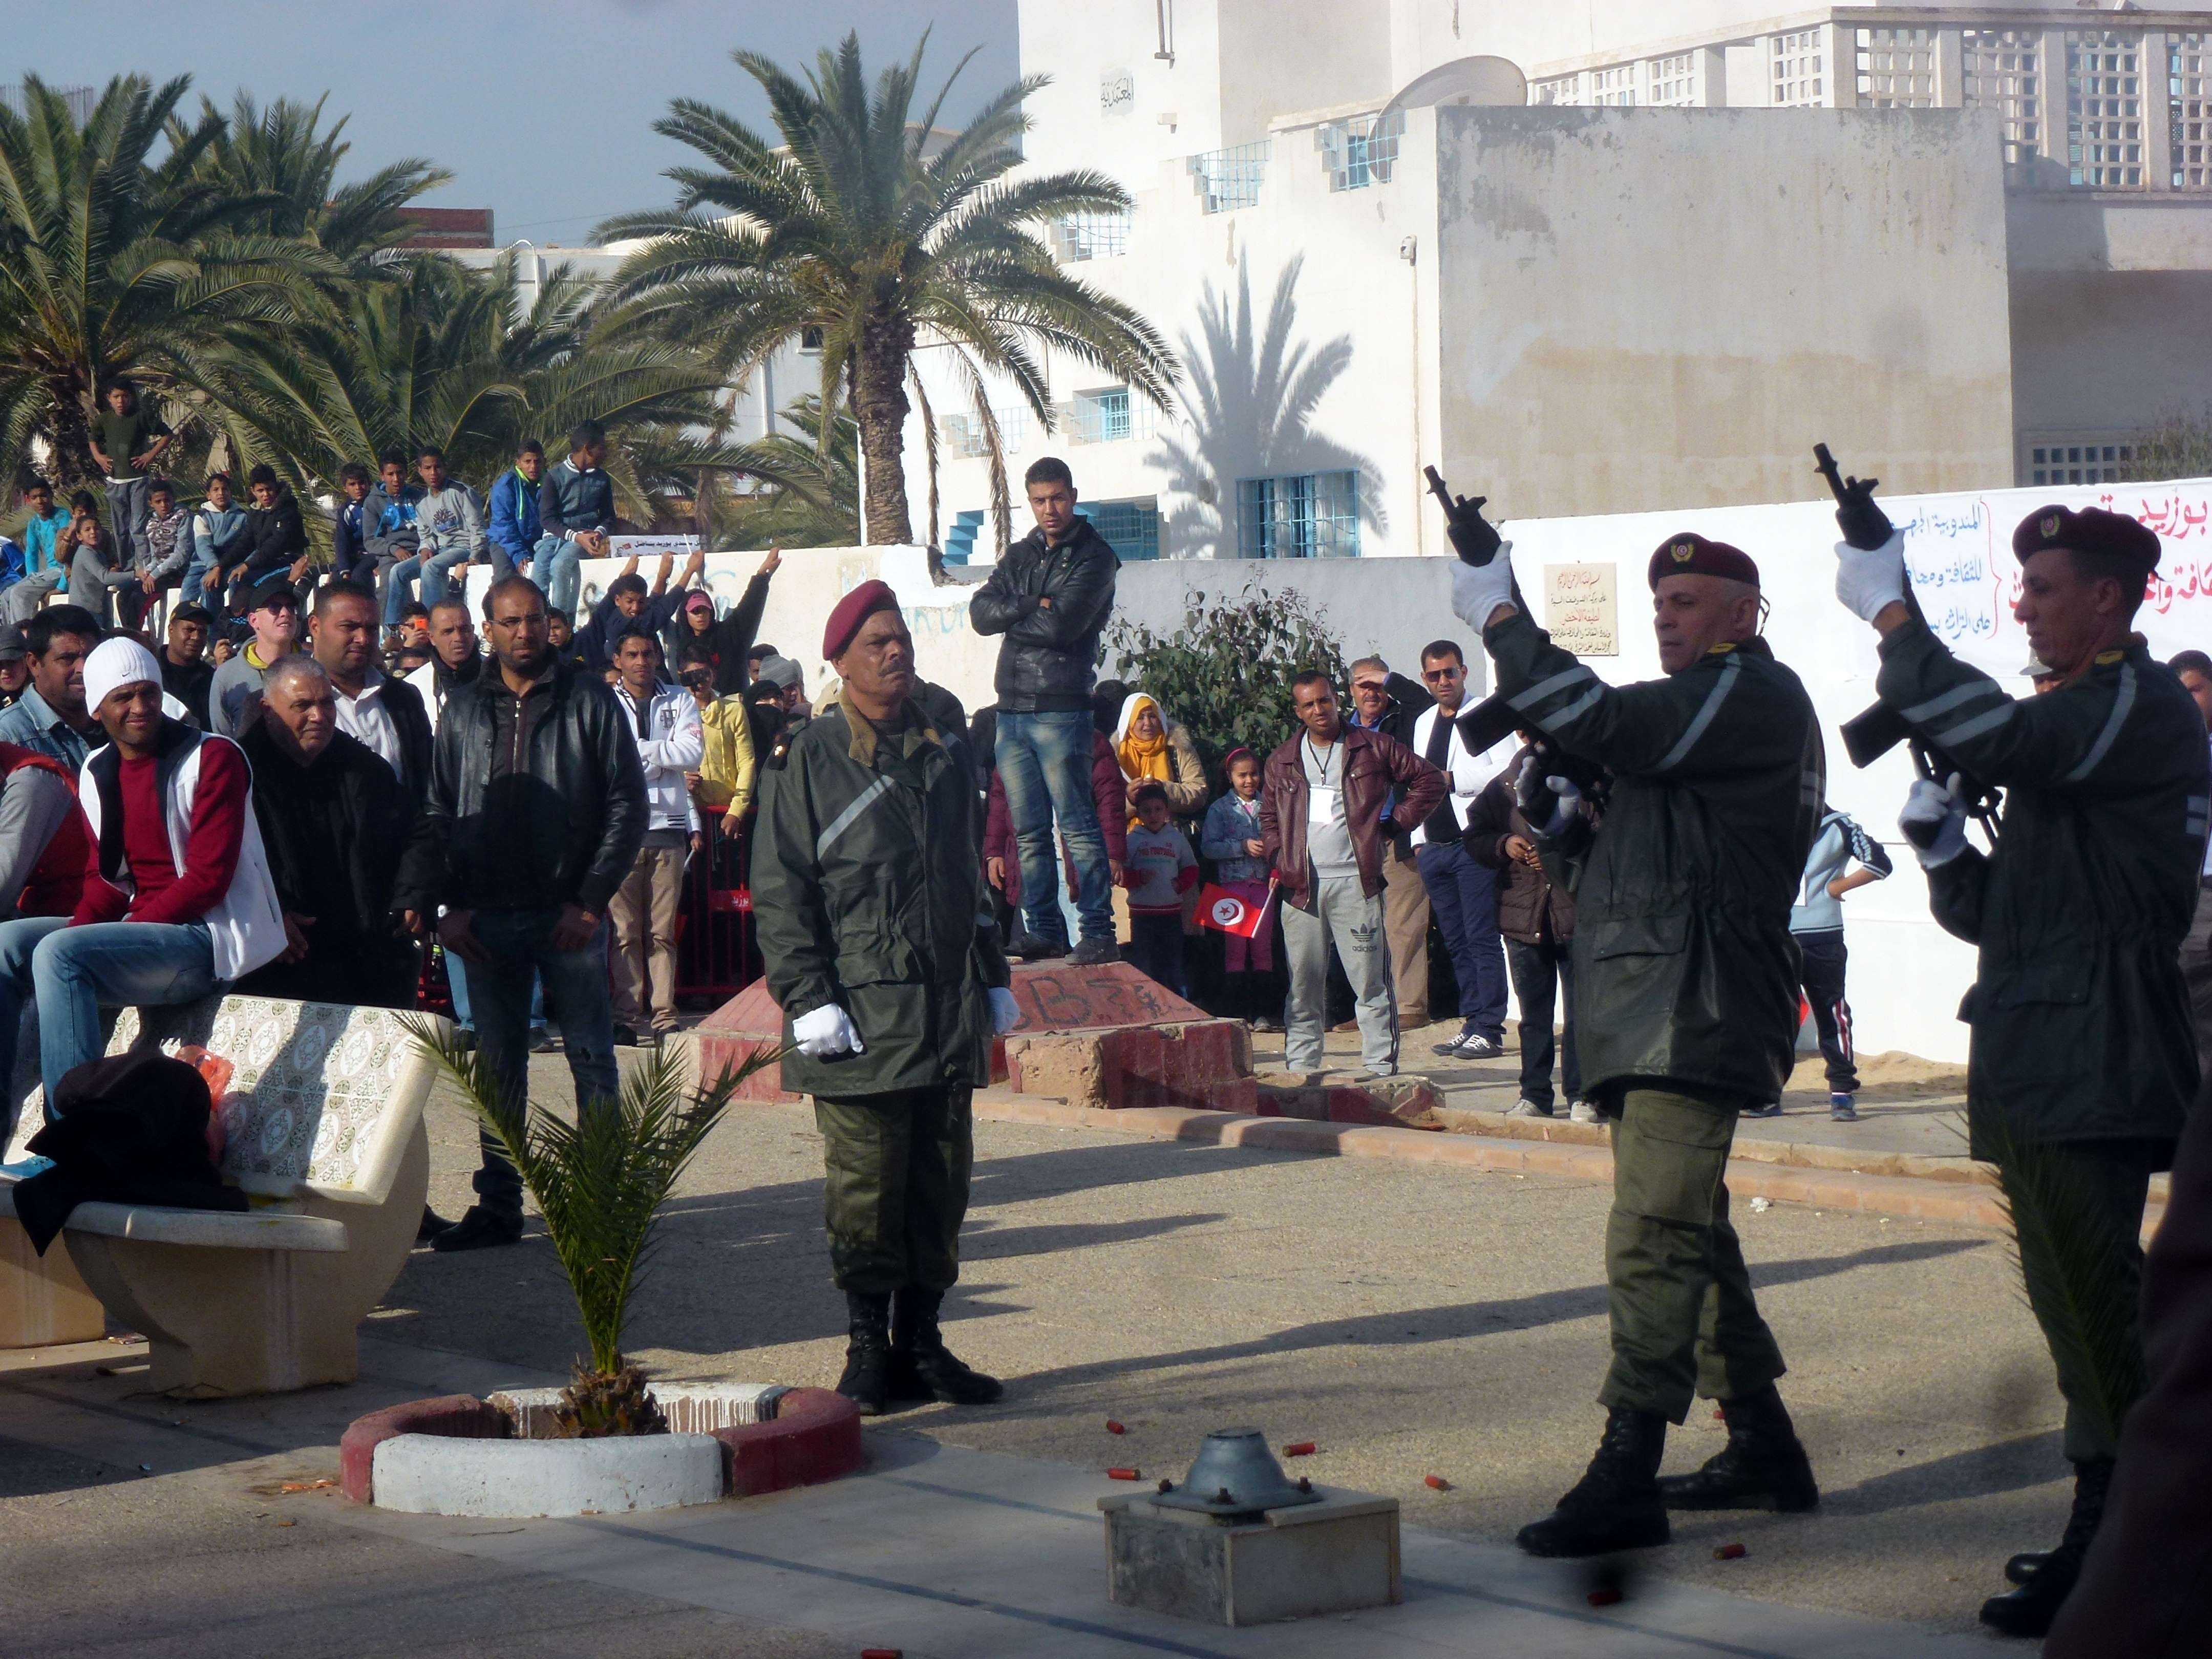 Tunisians take part in a ceremony marking the fifth anniversary of the self-immolation of Mohamed Bouazizi, a young street vendor, which sparked the revolution that ousted a dictator and ignited the Arab Spring on Dec. 17, 2015  in the central town of Sidi Bouzid.